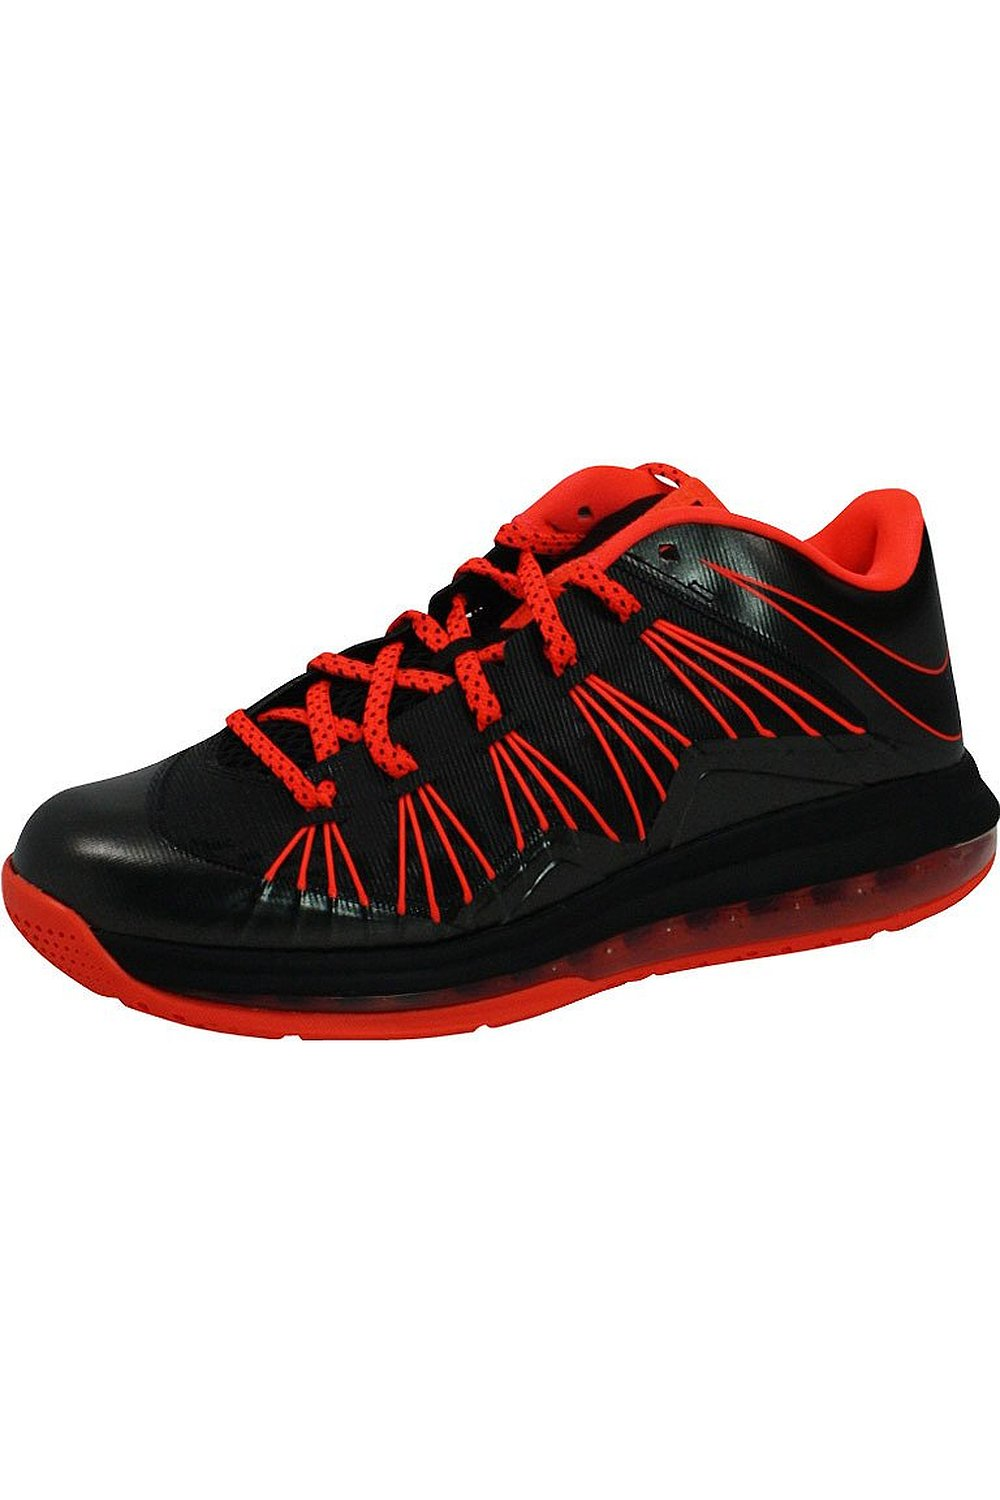 low priced 7531e dc1ad Nike Men s Air Max Lebron X Low Basketball Shoes